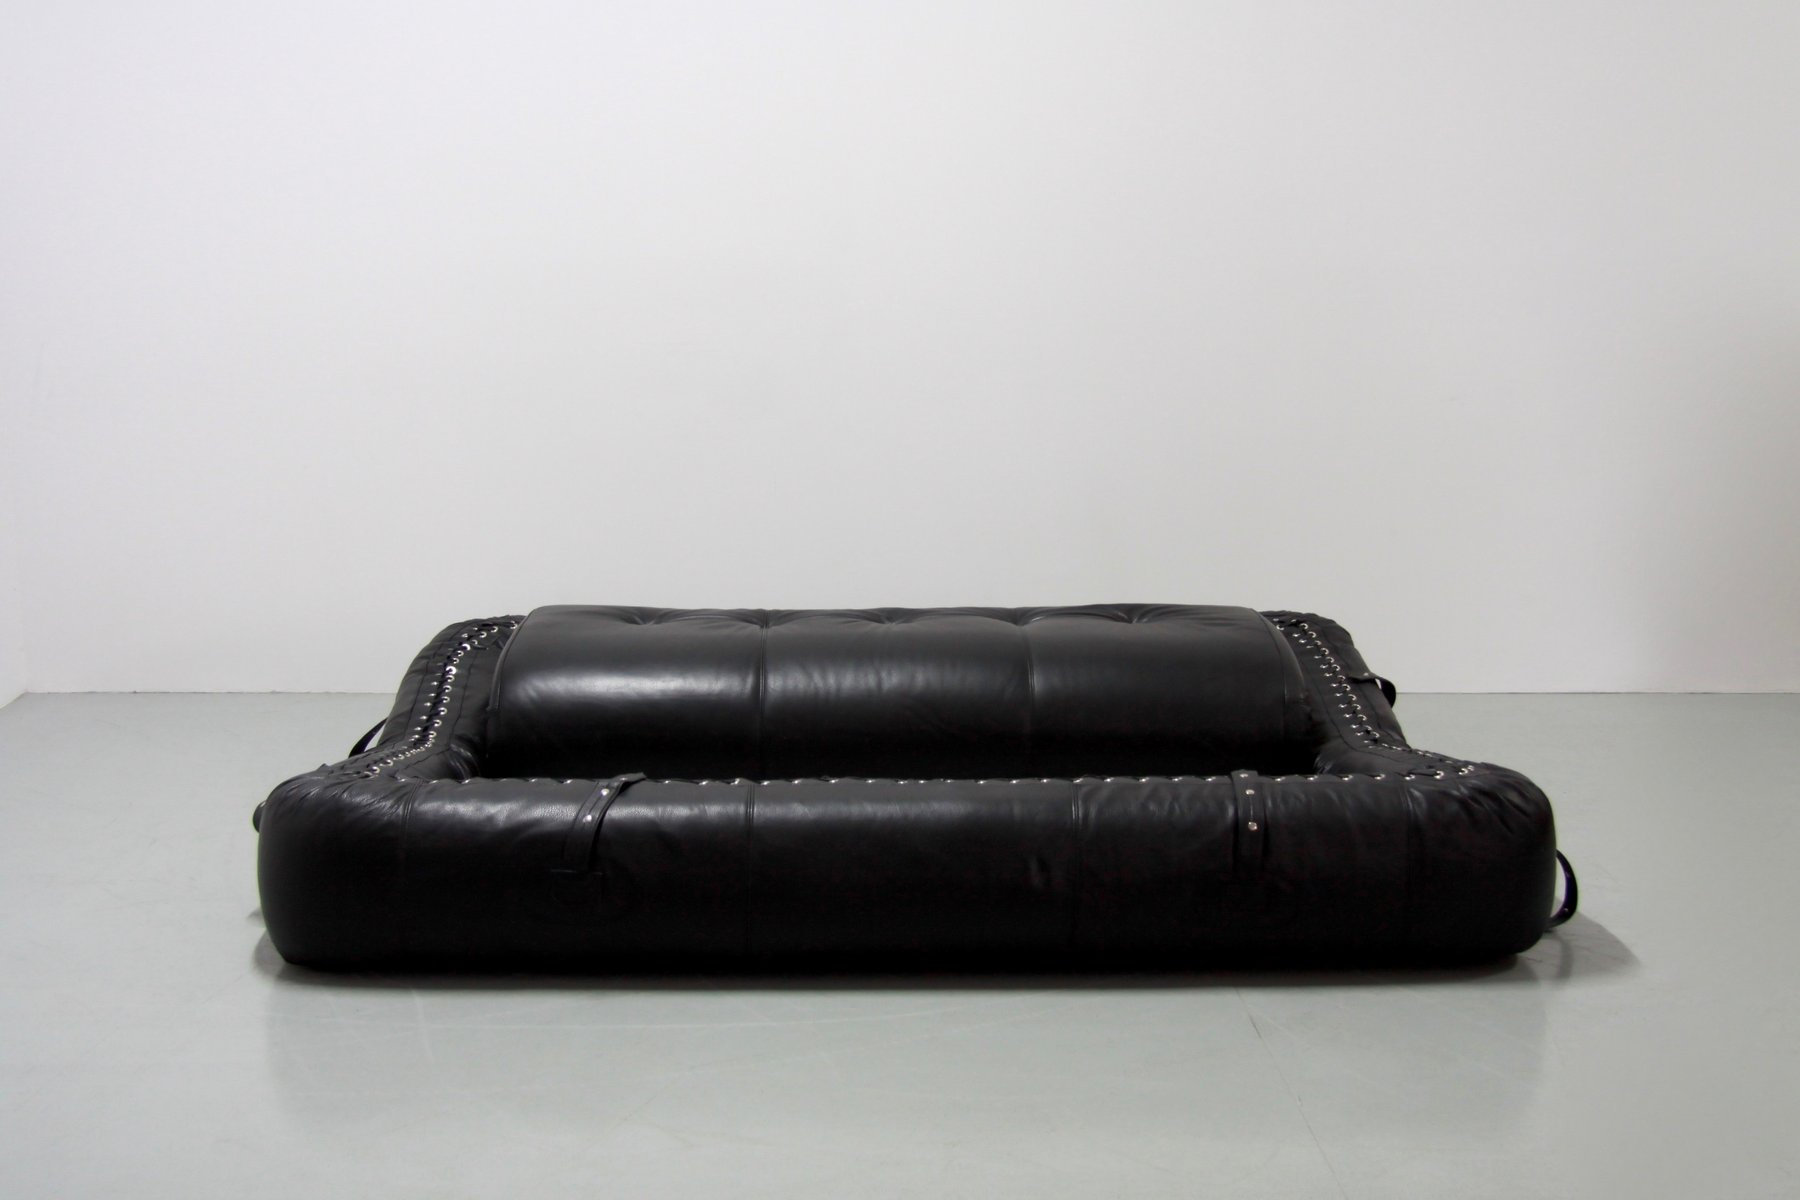 anfibio leather sofa bed stanley steemer cleaning by alessandro becchi for giovannetti